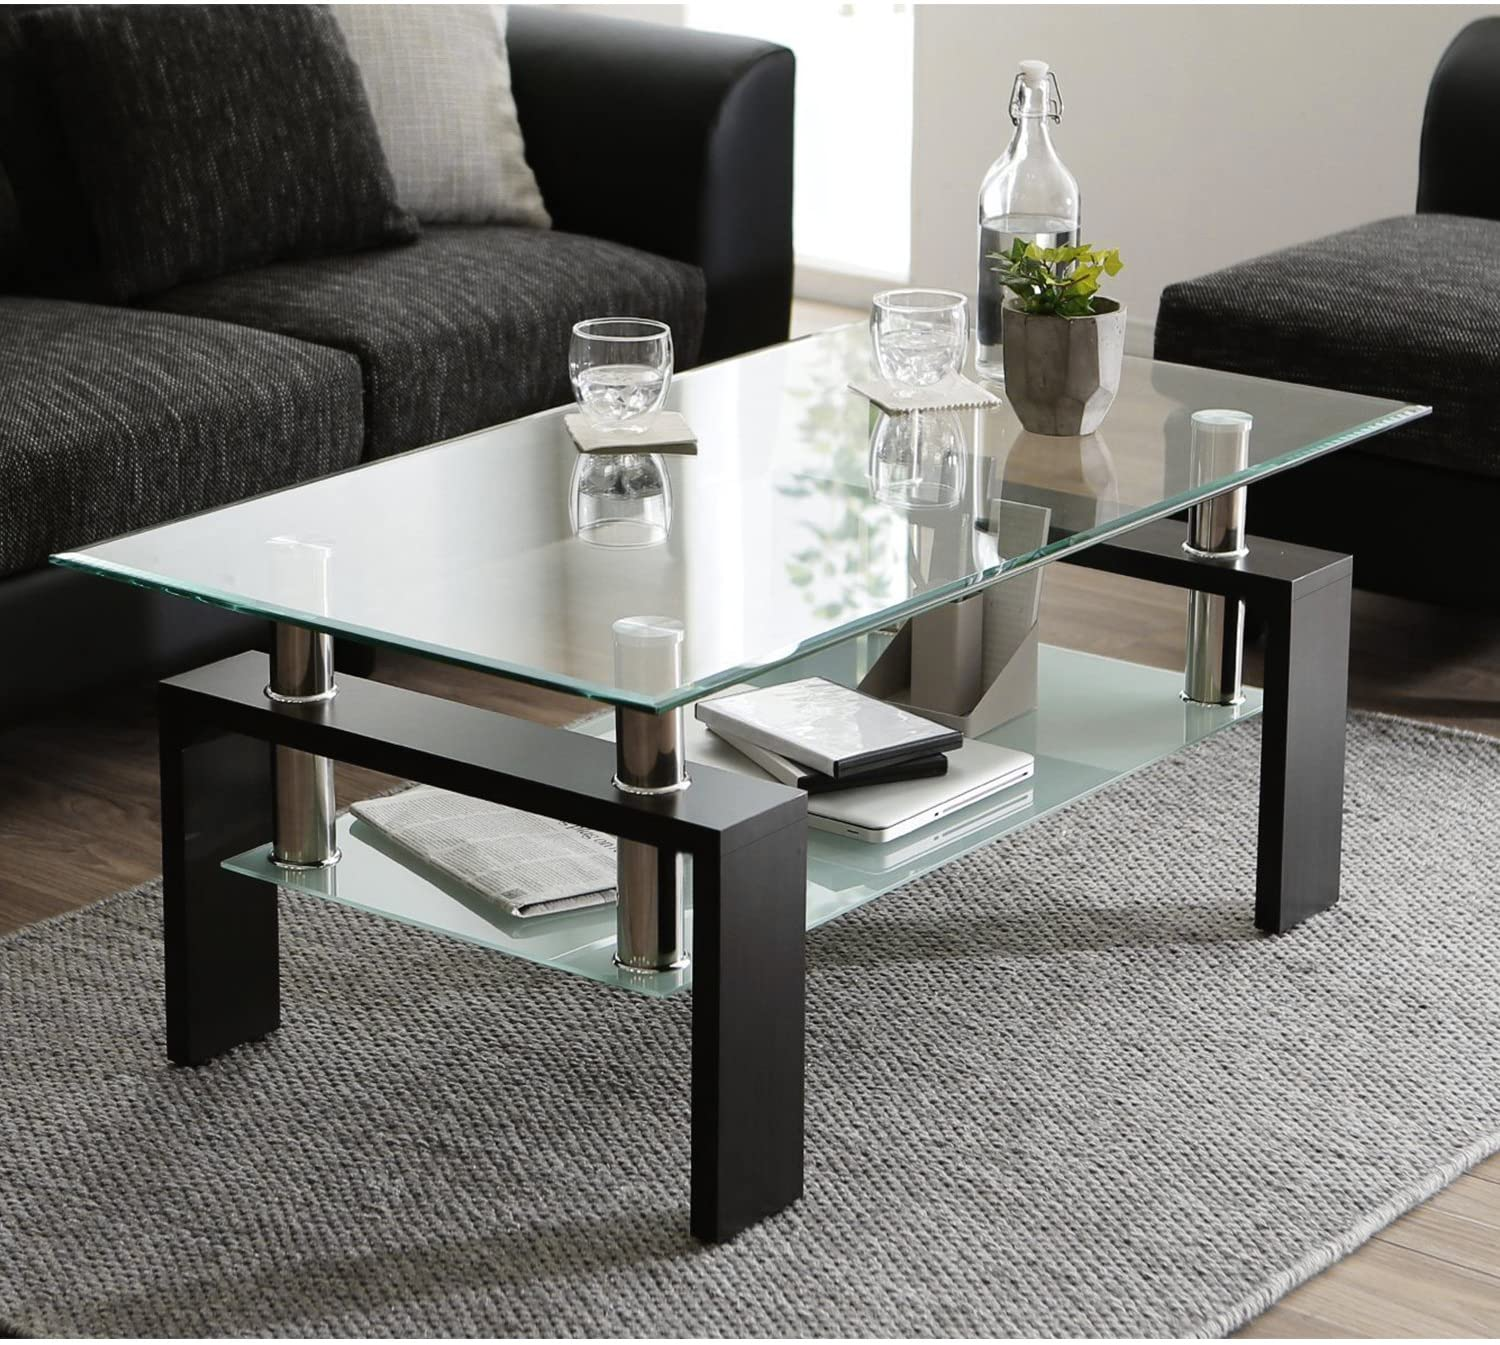 Glass Coffee Table with Lower Shelf, Clear Rectangle Glass Coffee Table,  Modern Coffee Table with Metal Legs, Rectangle Center Table Sofa Table Home